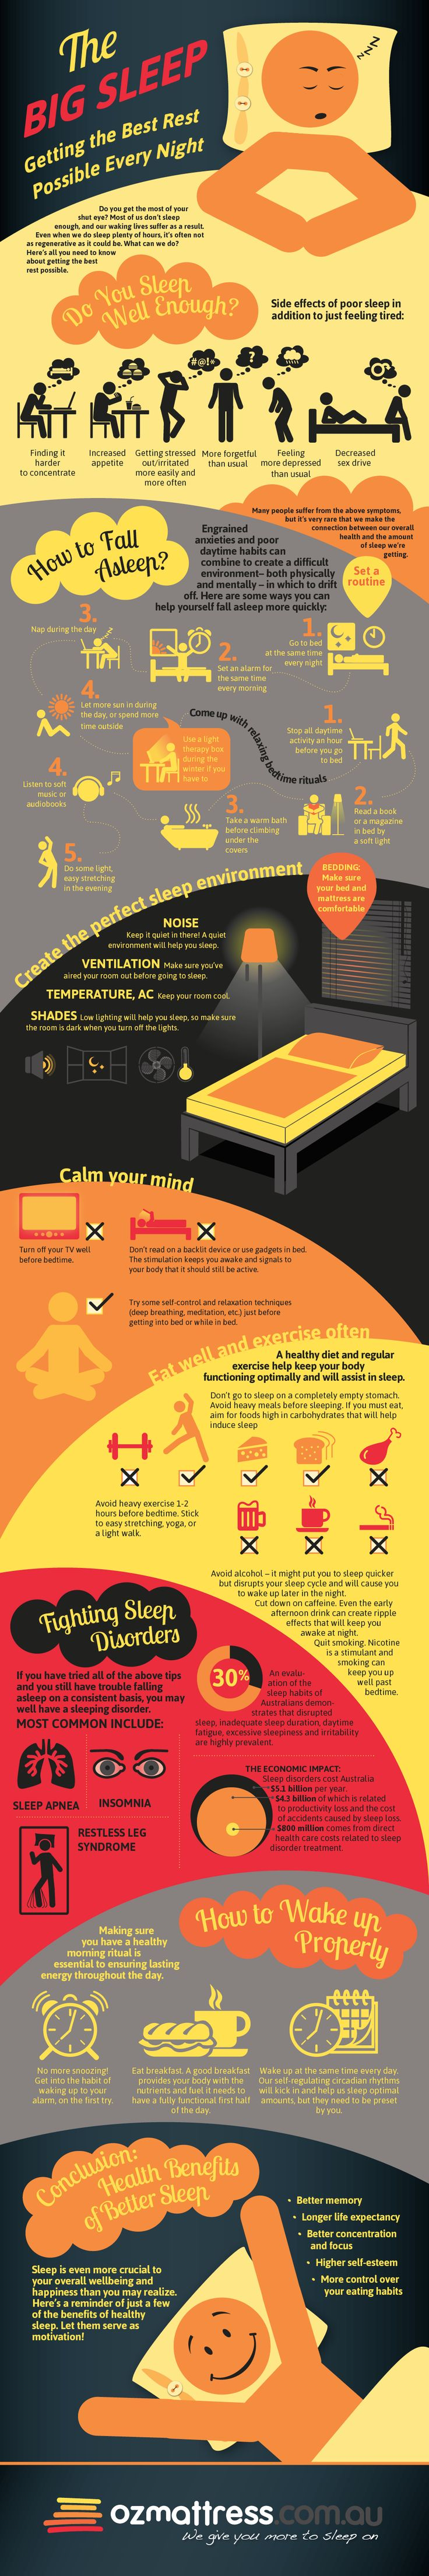 The Big Sleep: Getting The Best Sleep Possible Every Night - #infographic